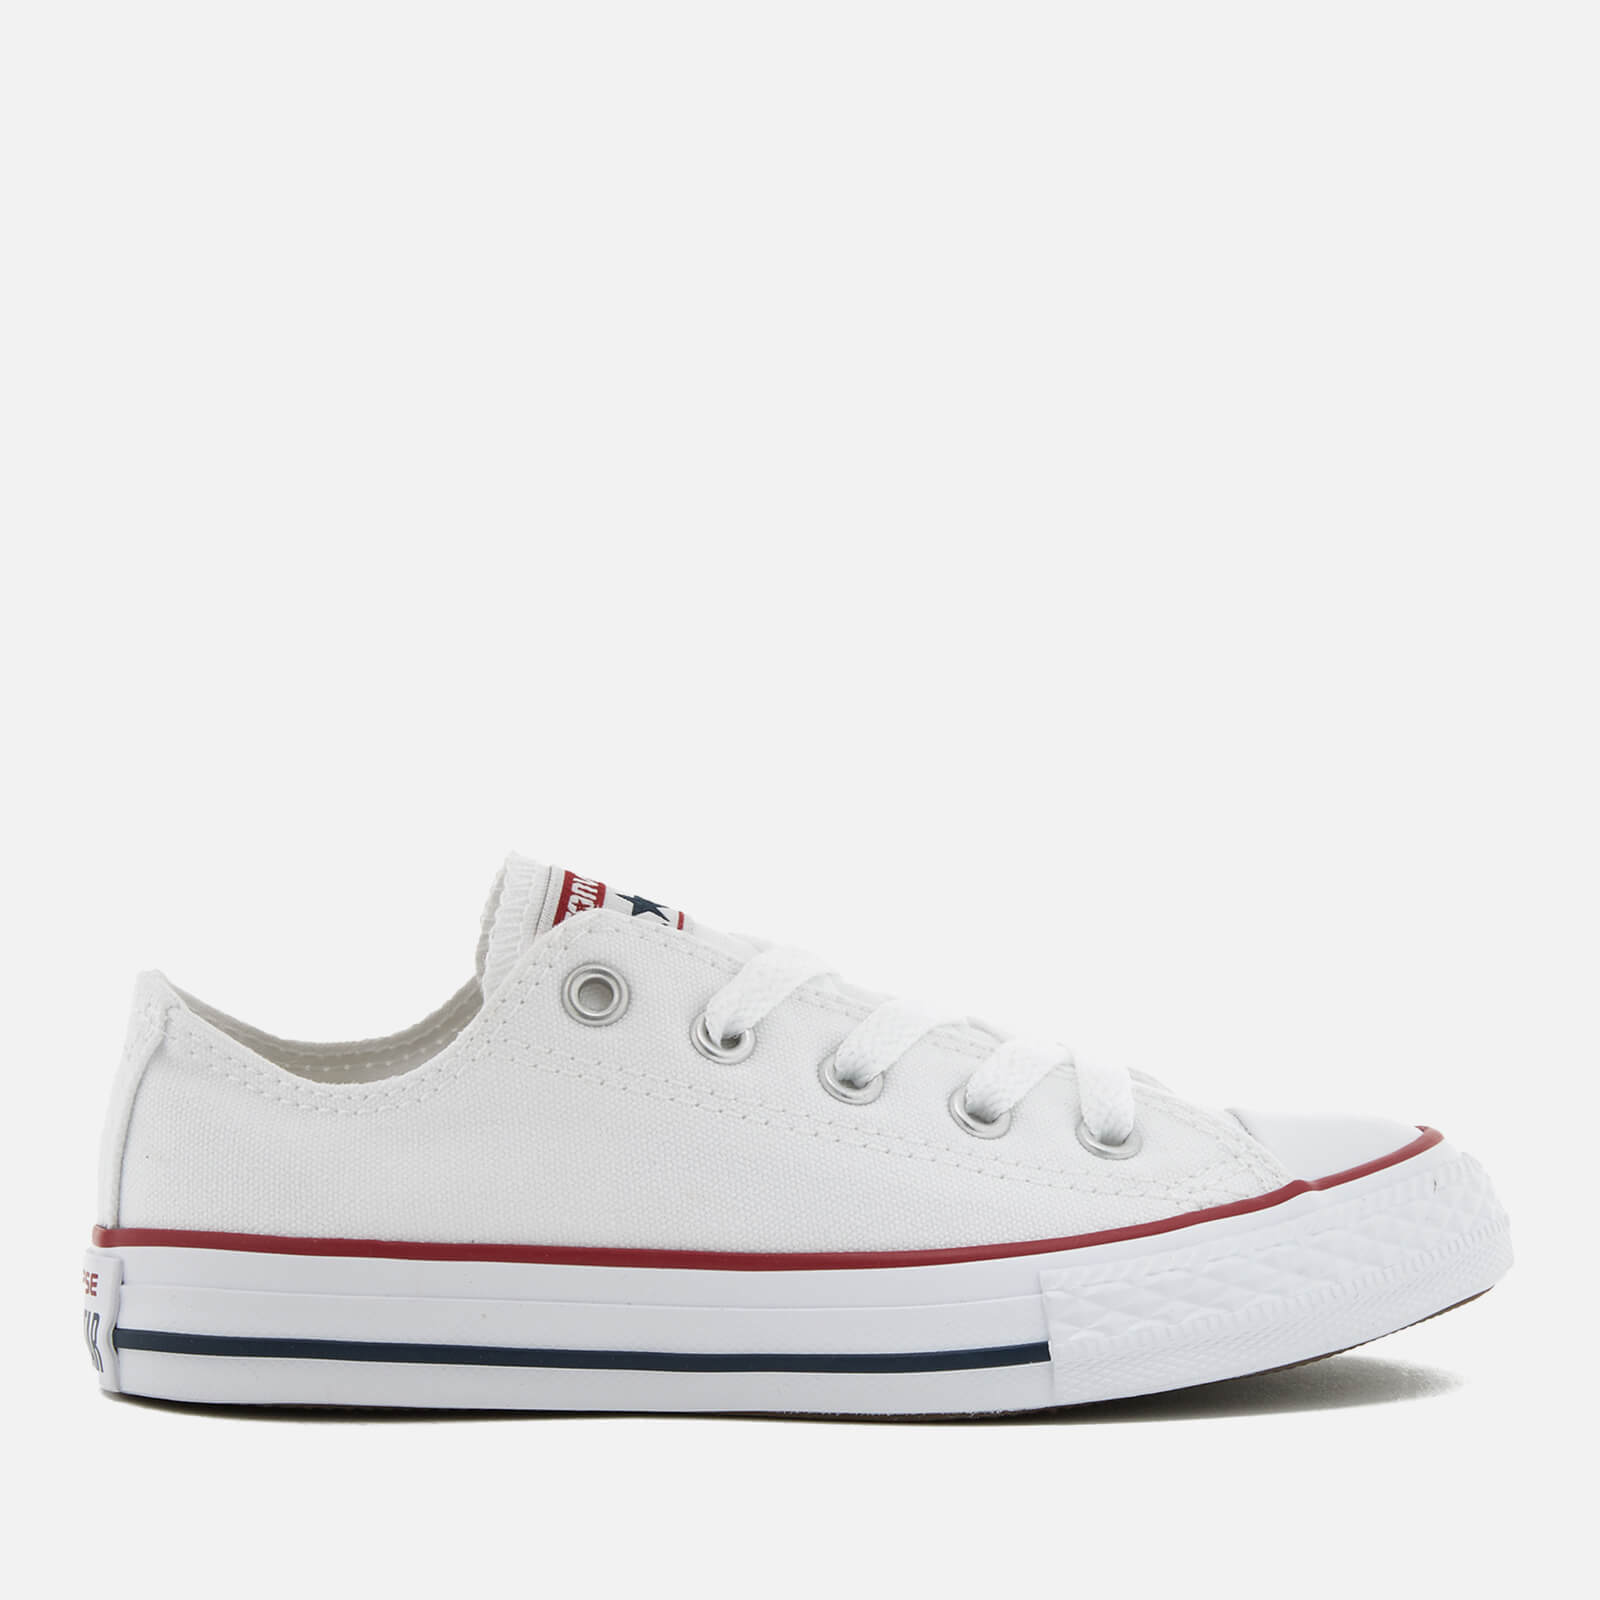 2822bffda97 Converse Kids' Chuck Taylor All Star Seasonal Ox Trainers - Optical White  Junior Clothing | TheHut.com